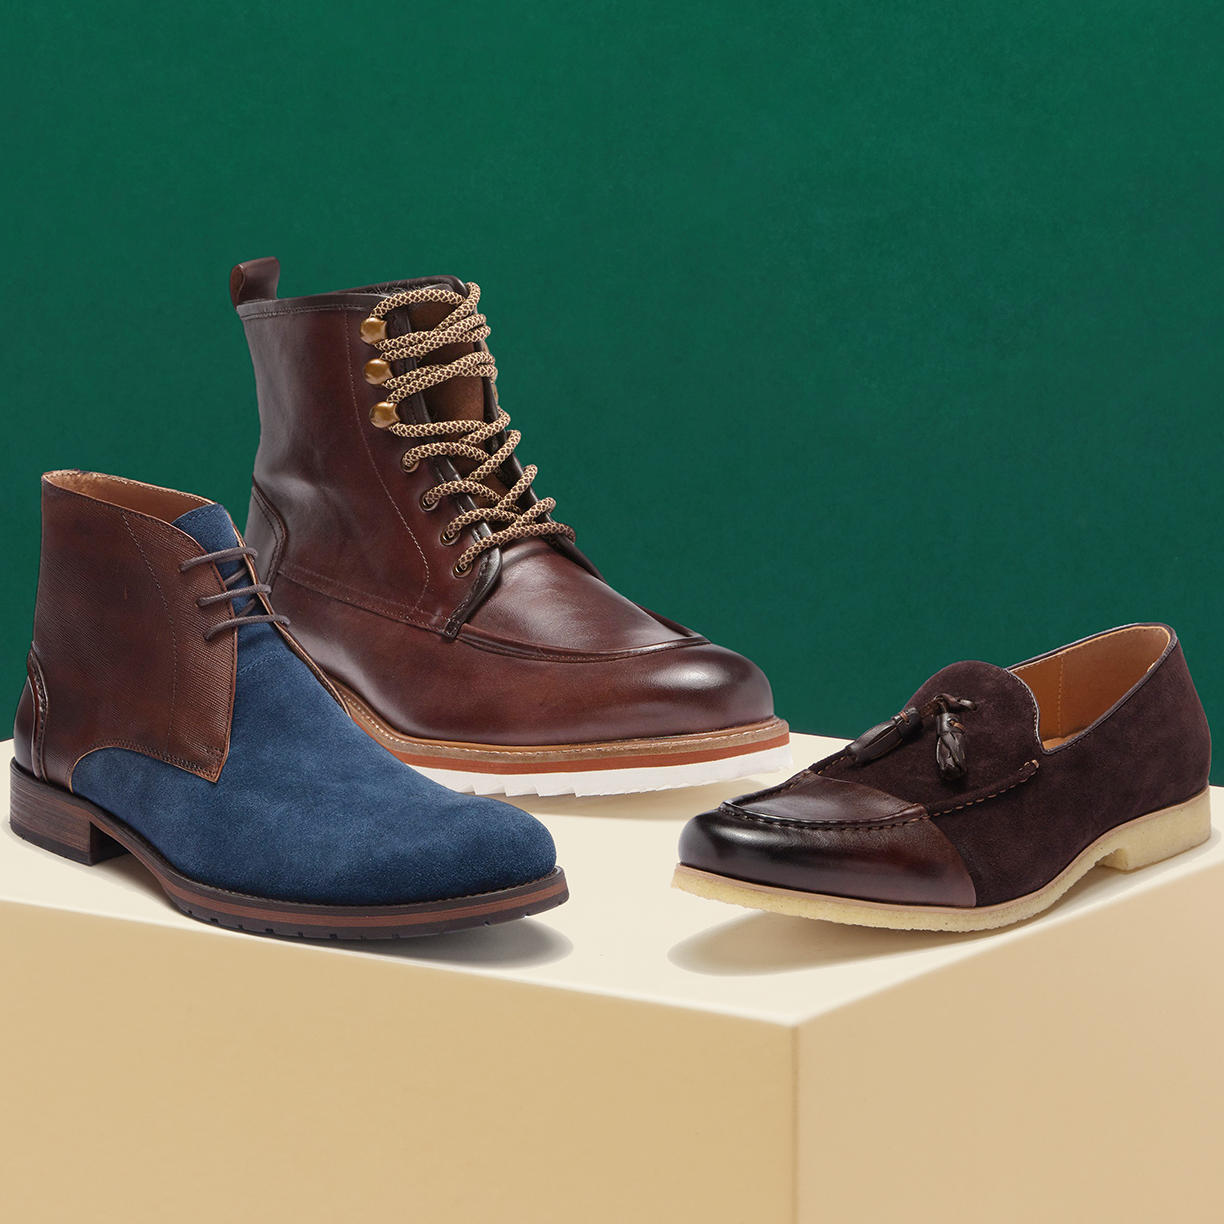 Contemporary Shoes for Him Up to 60% Off